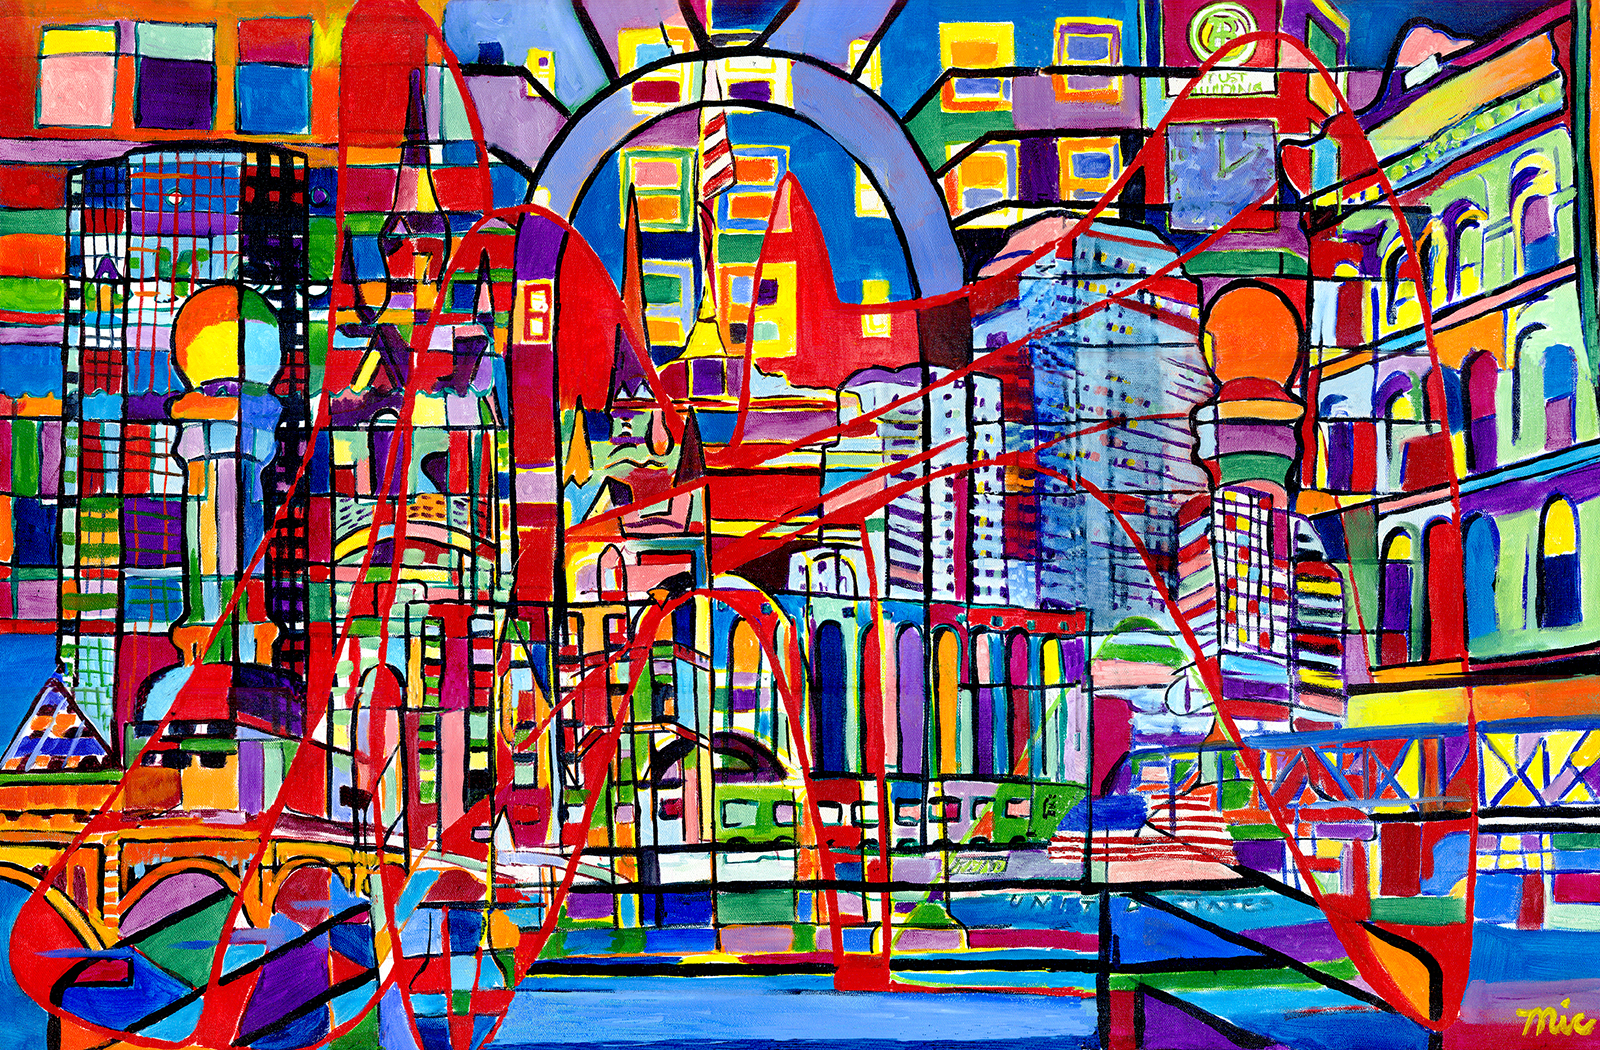 """Grand Rapids Fusion - Chosen for the 2006 Grand Rapids Festival of the Art.Oil on Canvas 24"""" x 36"""" Framed $12,000Giclee Limited Edition and canvas prints are available. Please visit the prints gallery."""